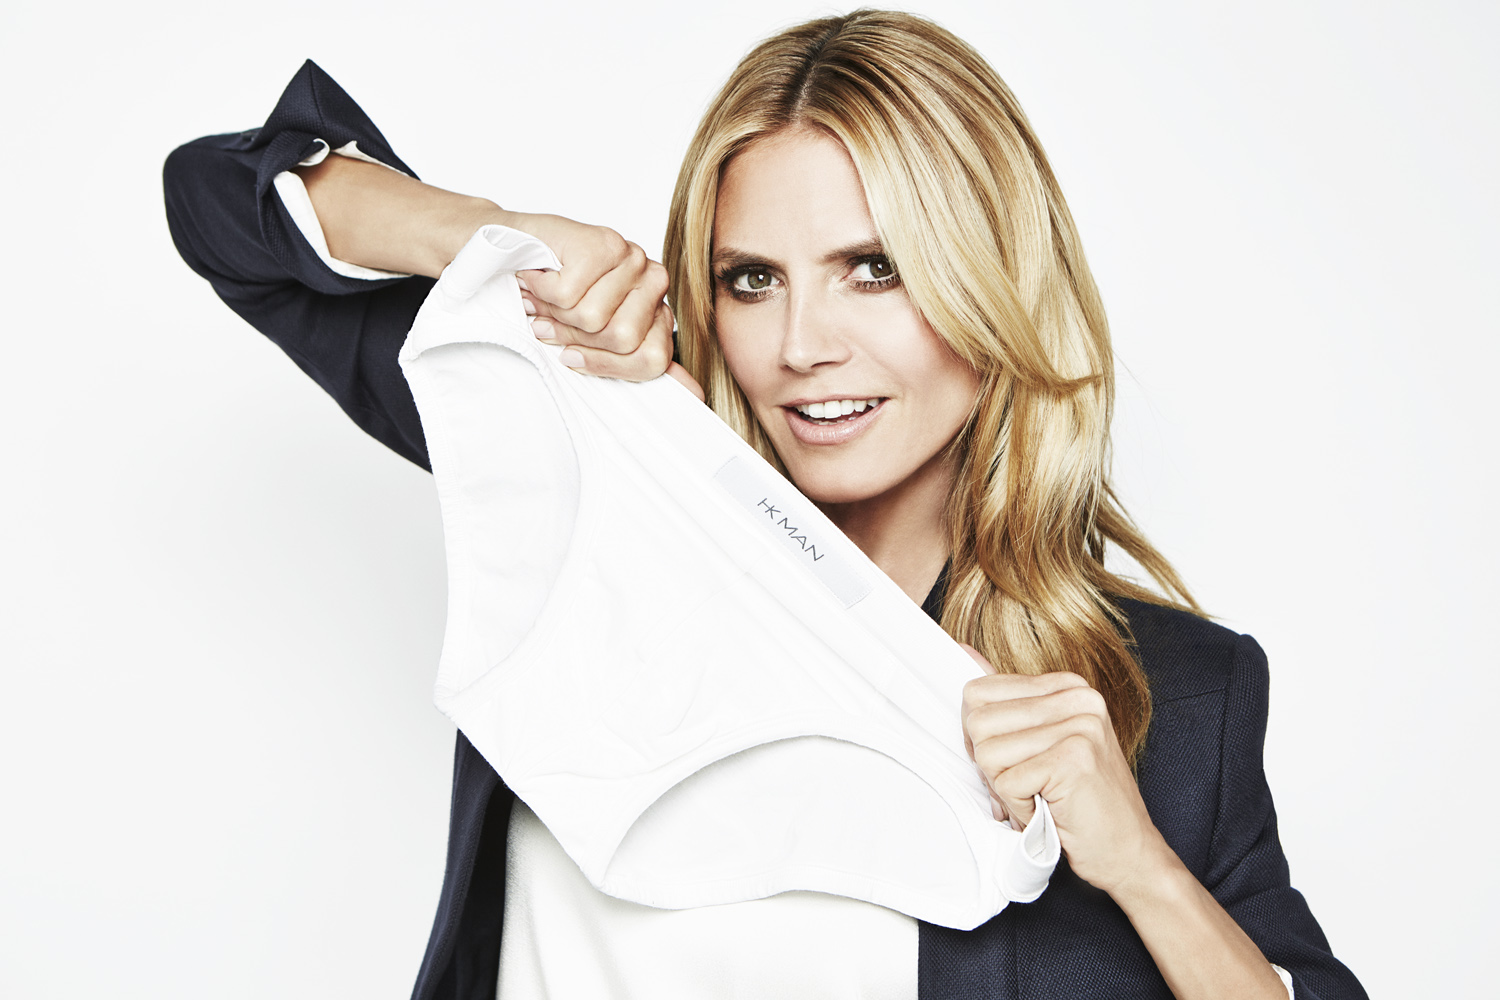 Heidi Klum Stars in Wix's #ItsThatEasy Campaign